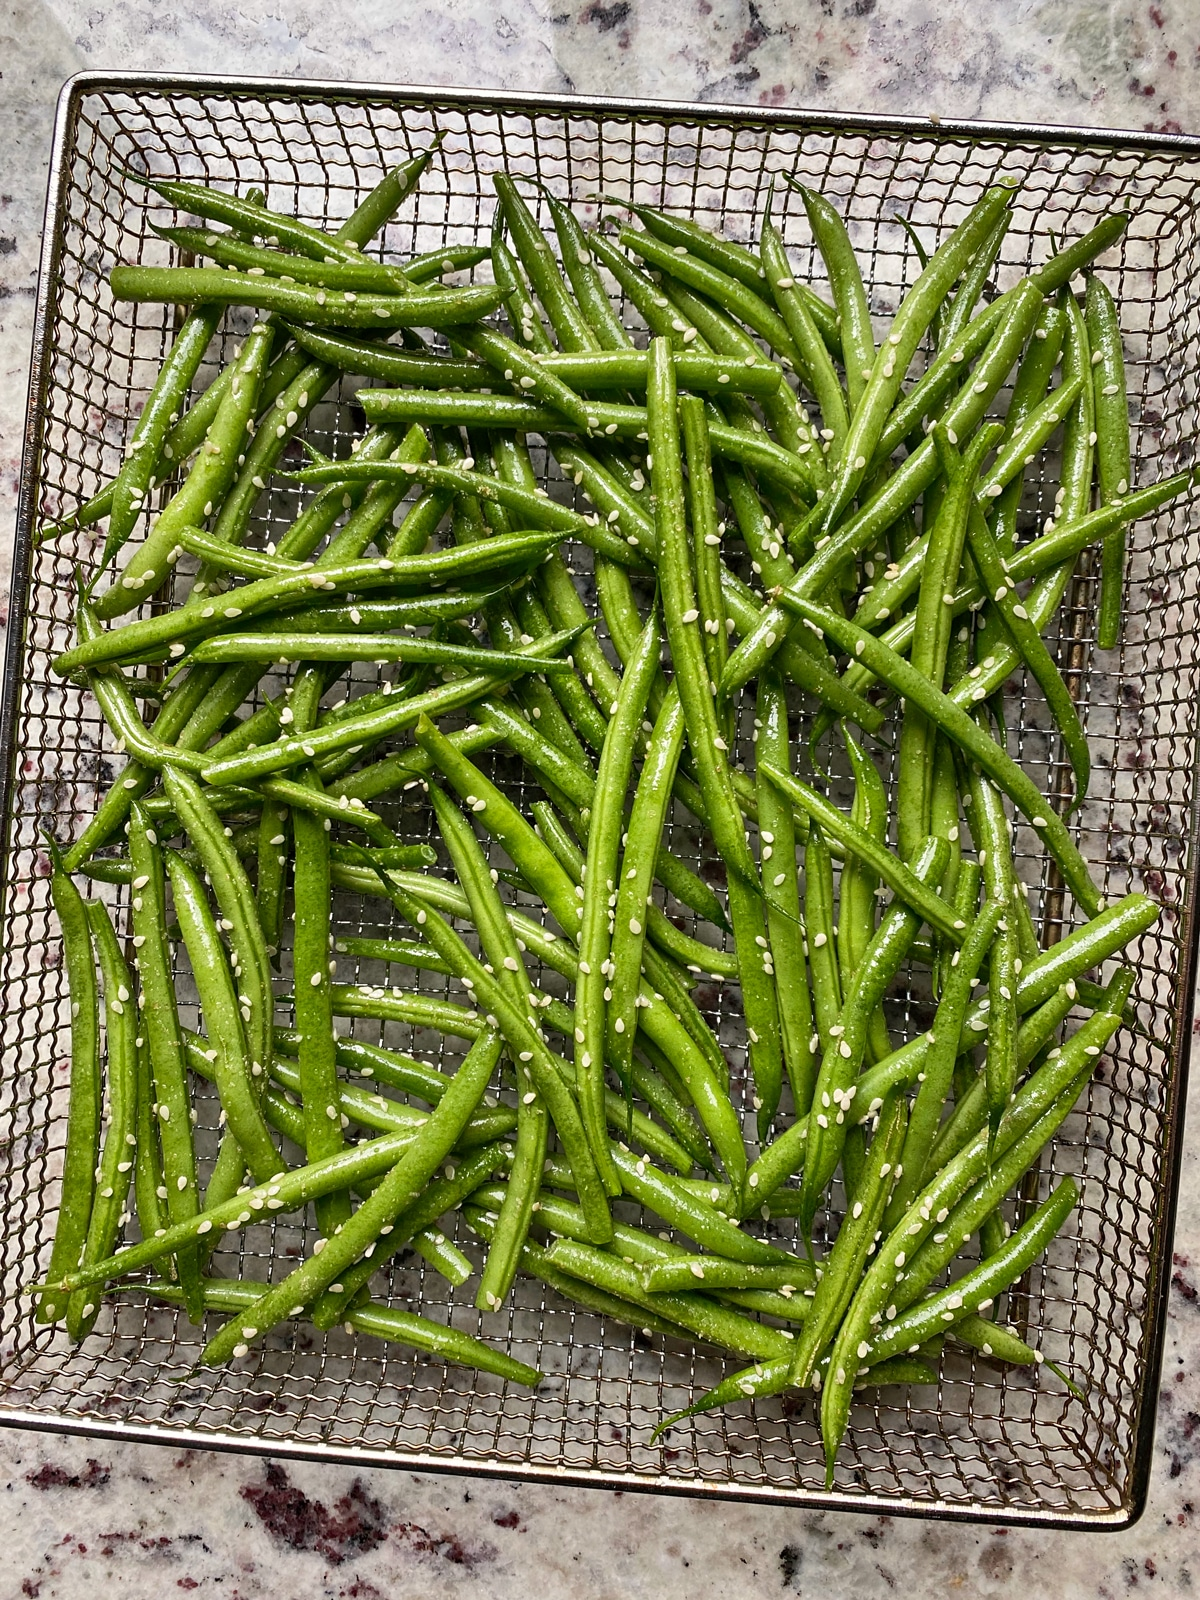 uncooked green beans in air fryer basket